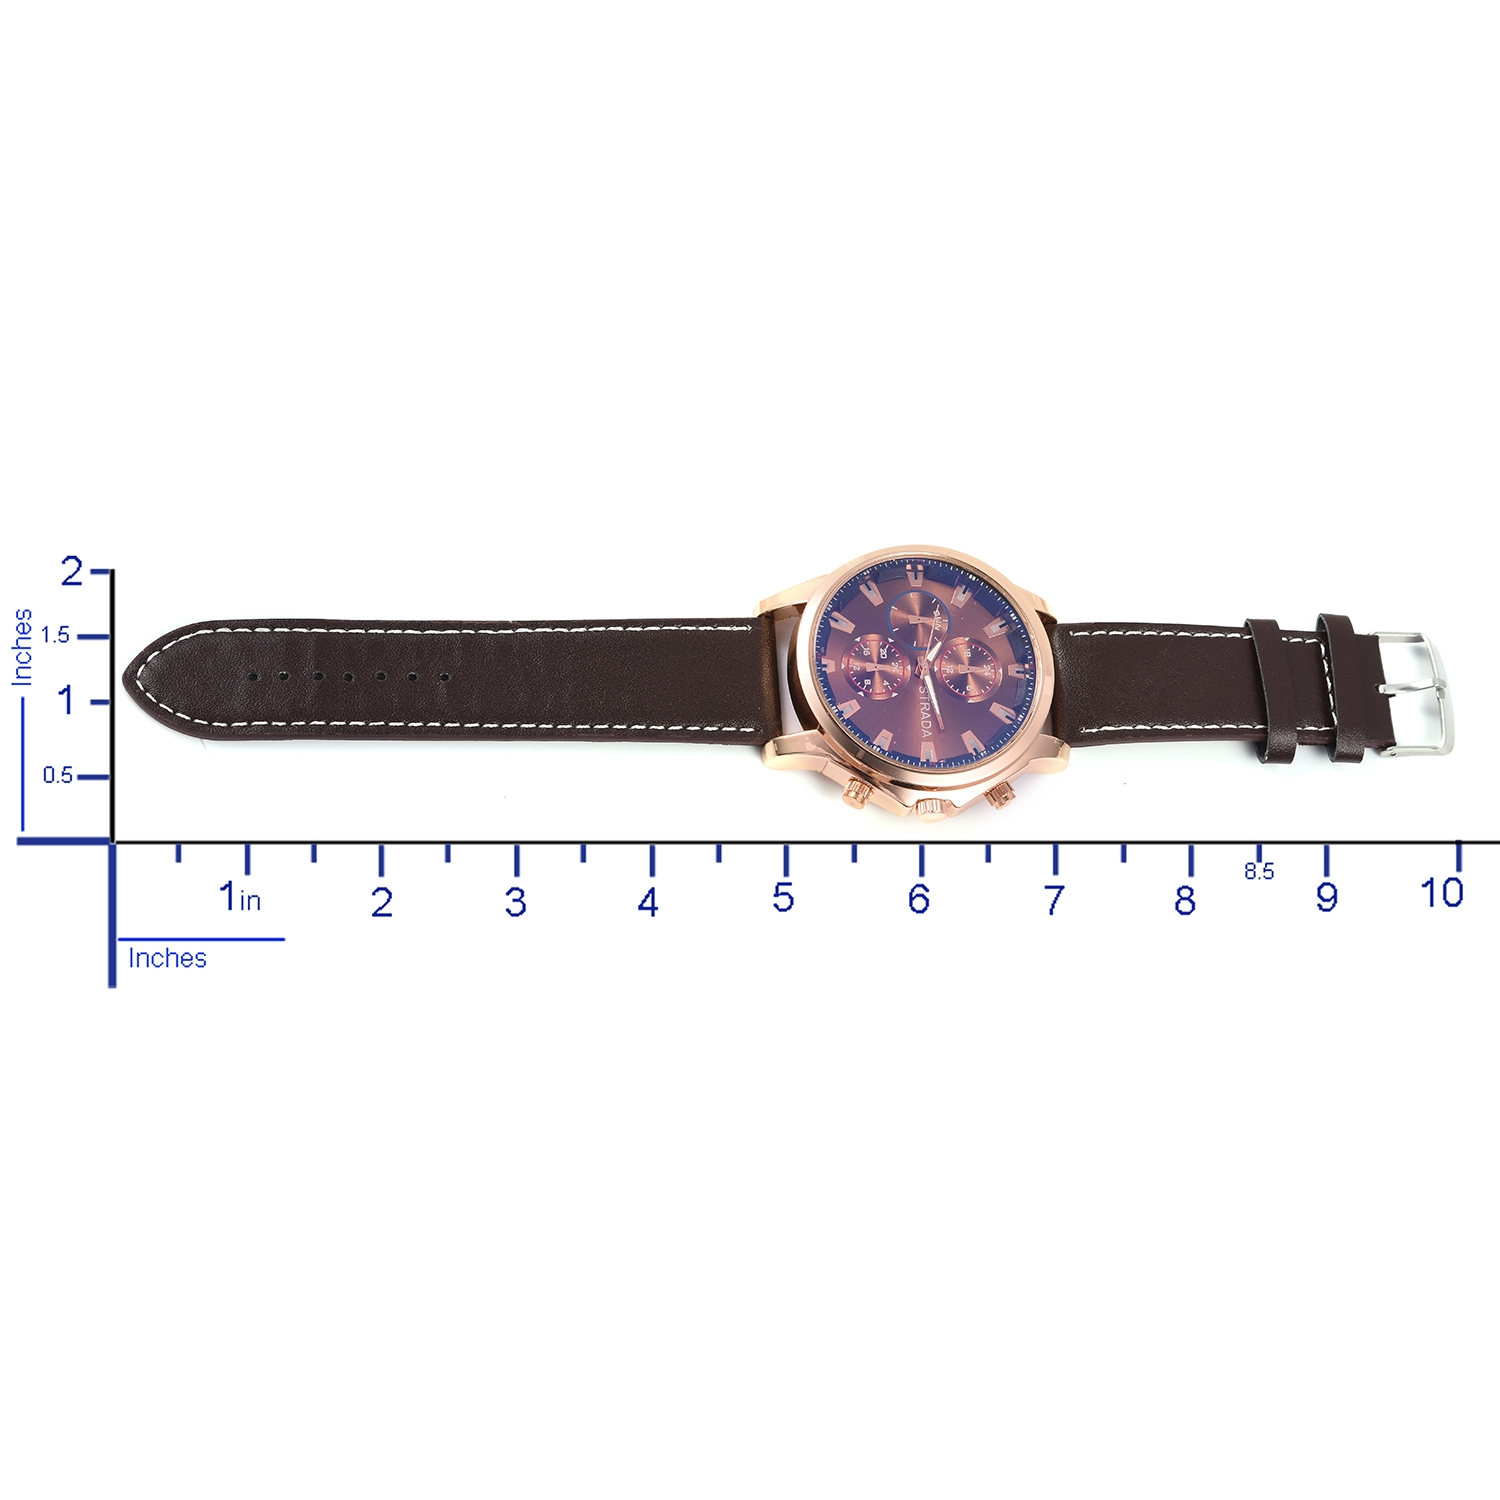 STRADA Japanese Movement Water Resistant Watch with Brown Faux Leather Band and Stainless Steel Back